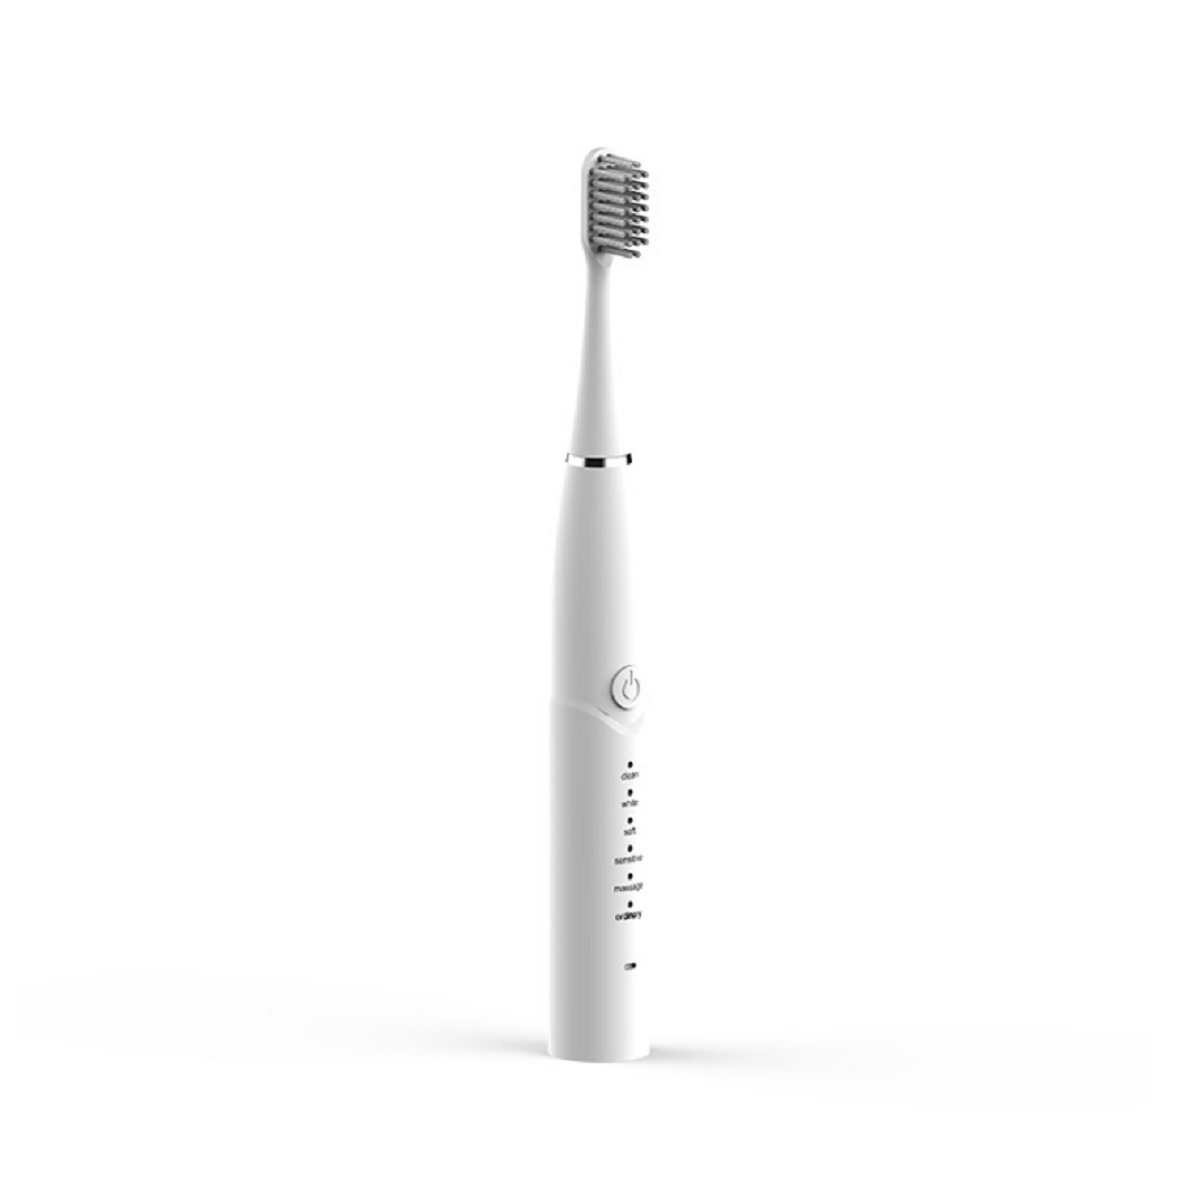 Electric Toothbrush Adult Household 6-gear Adjustable Whitening Waterproof Rechargeable Ultrasonic Toothbrush